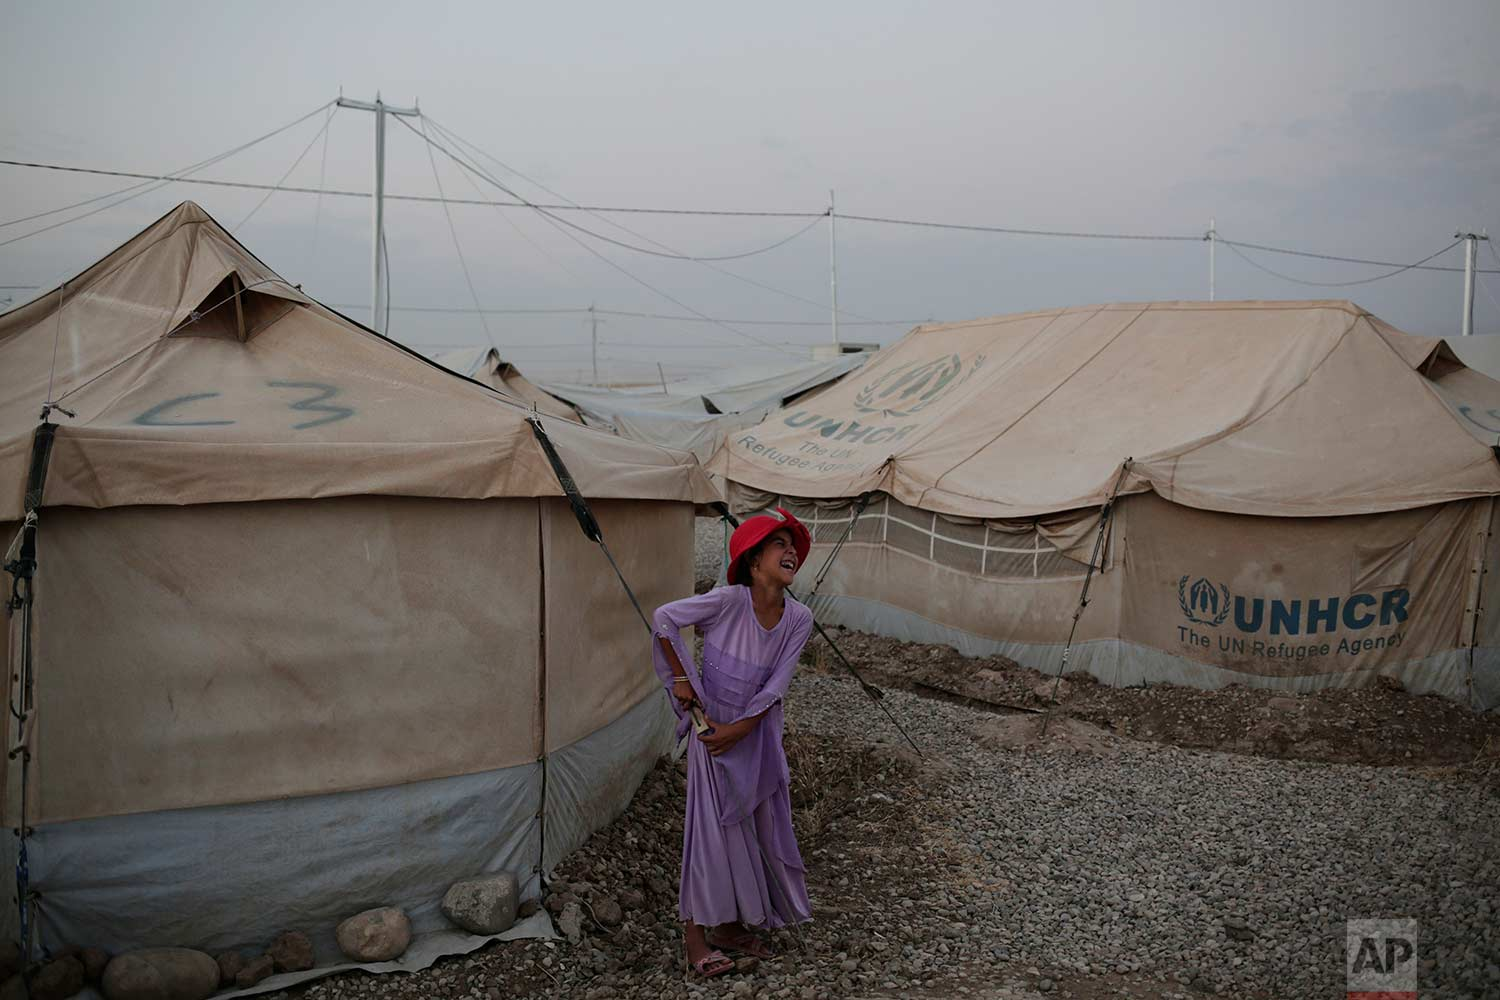 In this Wednesday, Aug. 2, 2017 photo, seven year-old Ragad Ibrahim from Mosul laughs while standing next to her tent in the Hassan Sham camp in northern Iraq. (AP Photo/Bram Janssen)